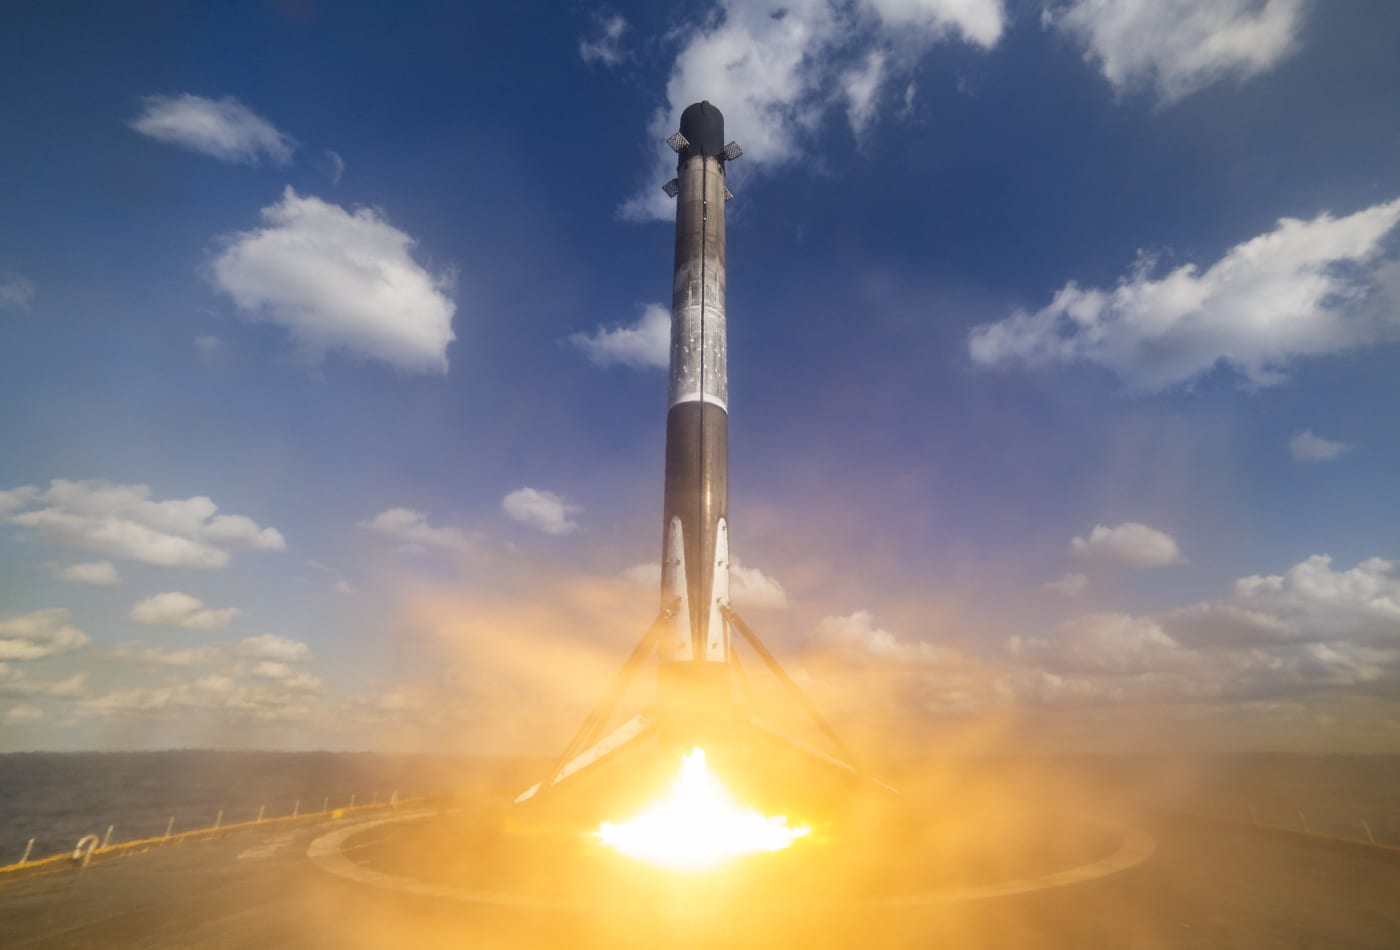 Private companies such as SpaceX are driving costs down for everyone in the space race, says man behind UFO ETF